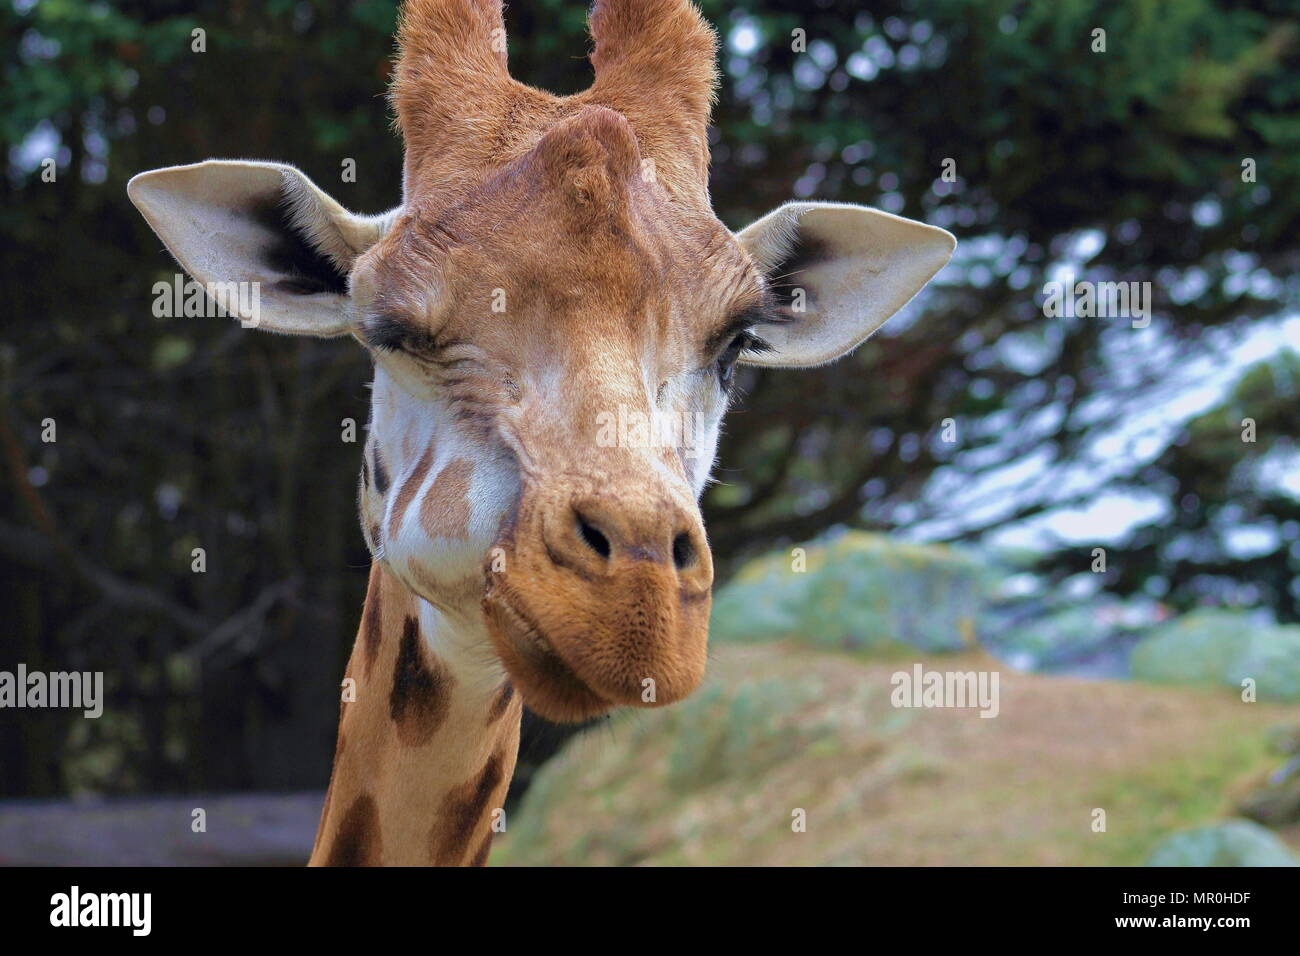 Close up of a giraffe  (Giraffa camelopardalis) winking - Stock Image